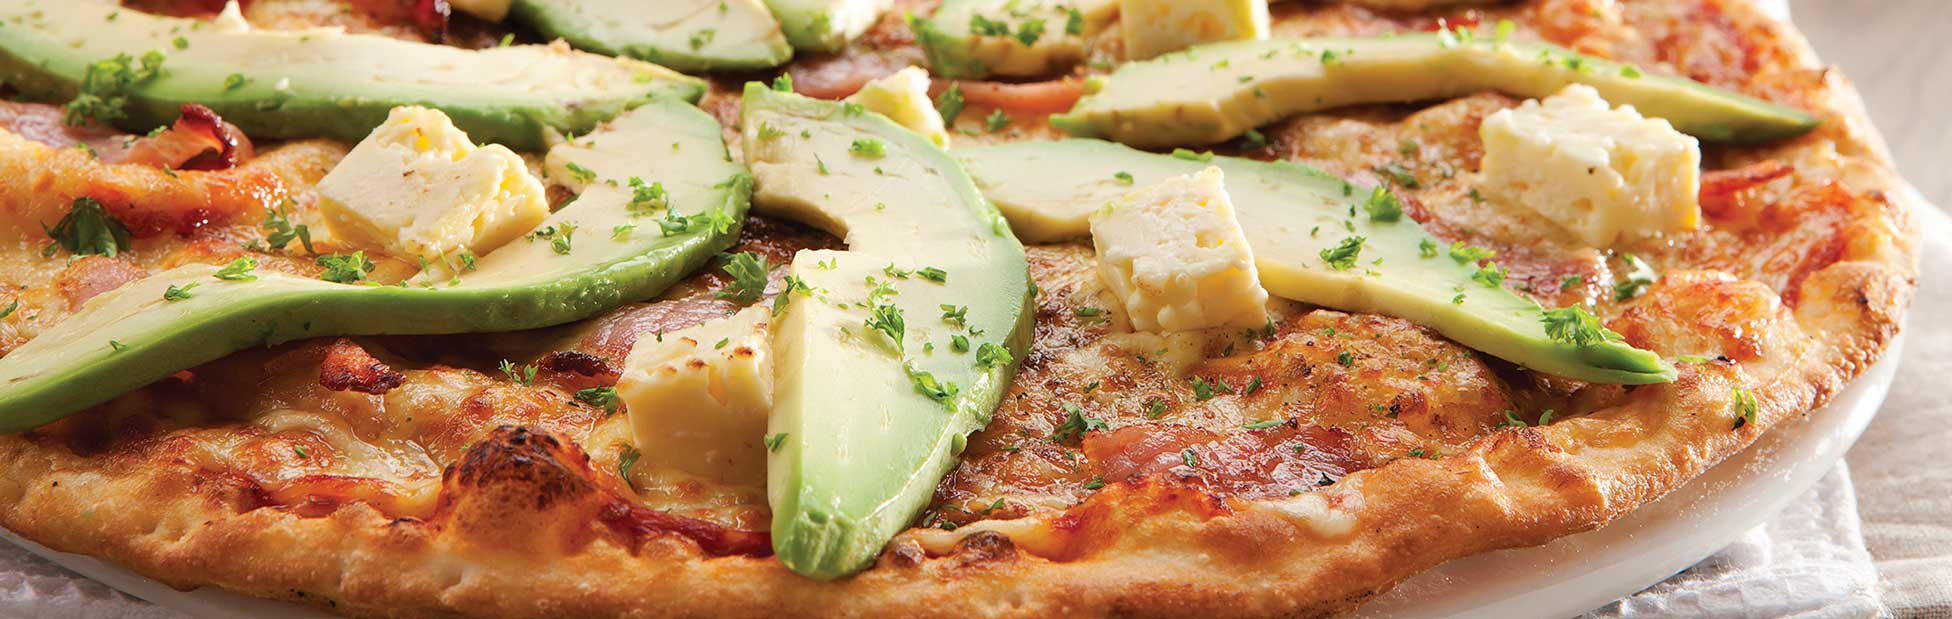 Pizza covered in avocado